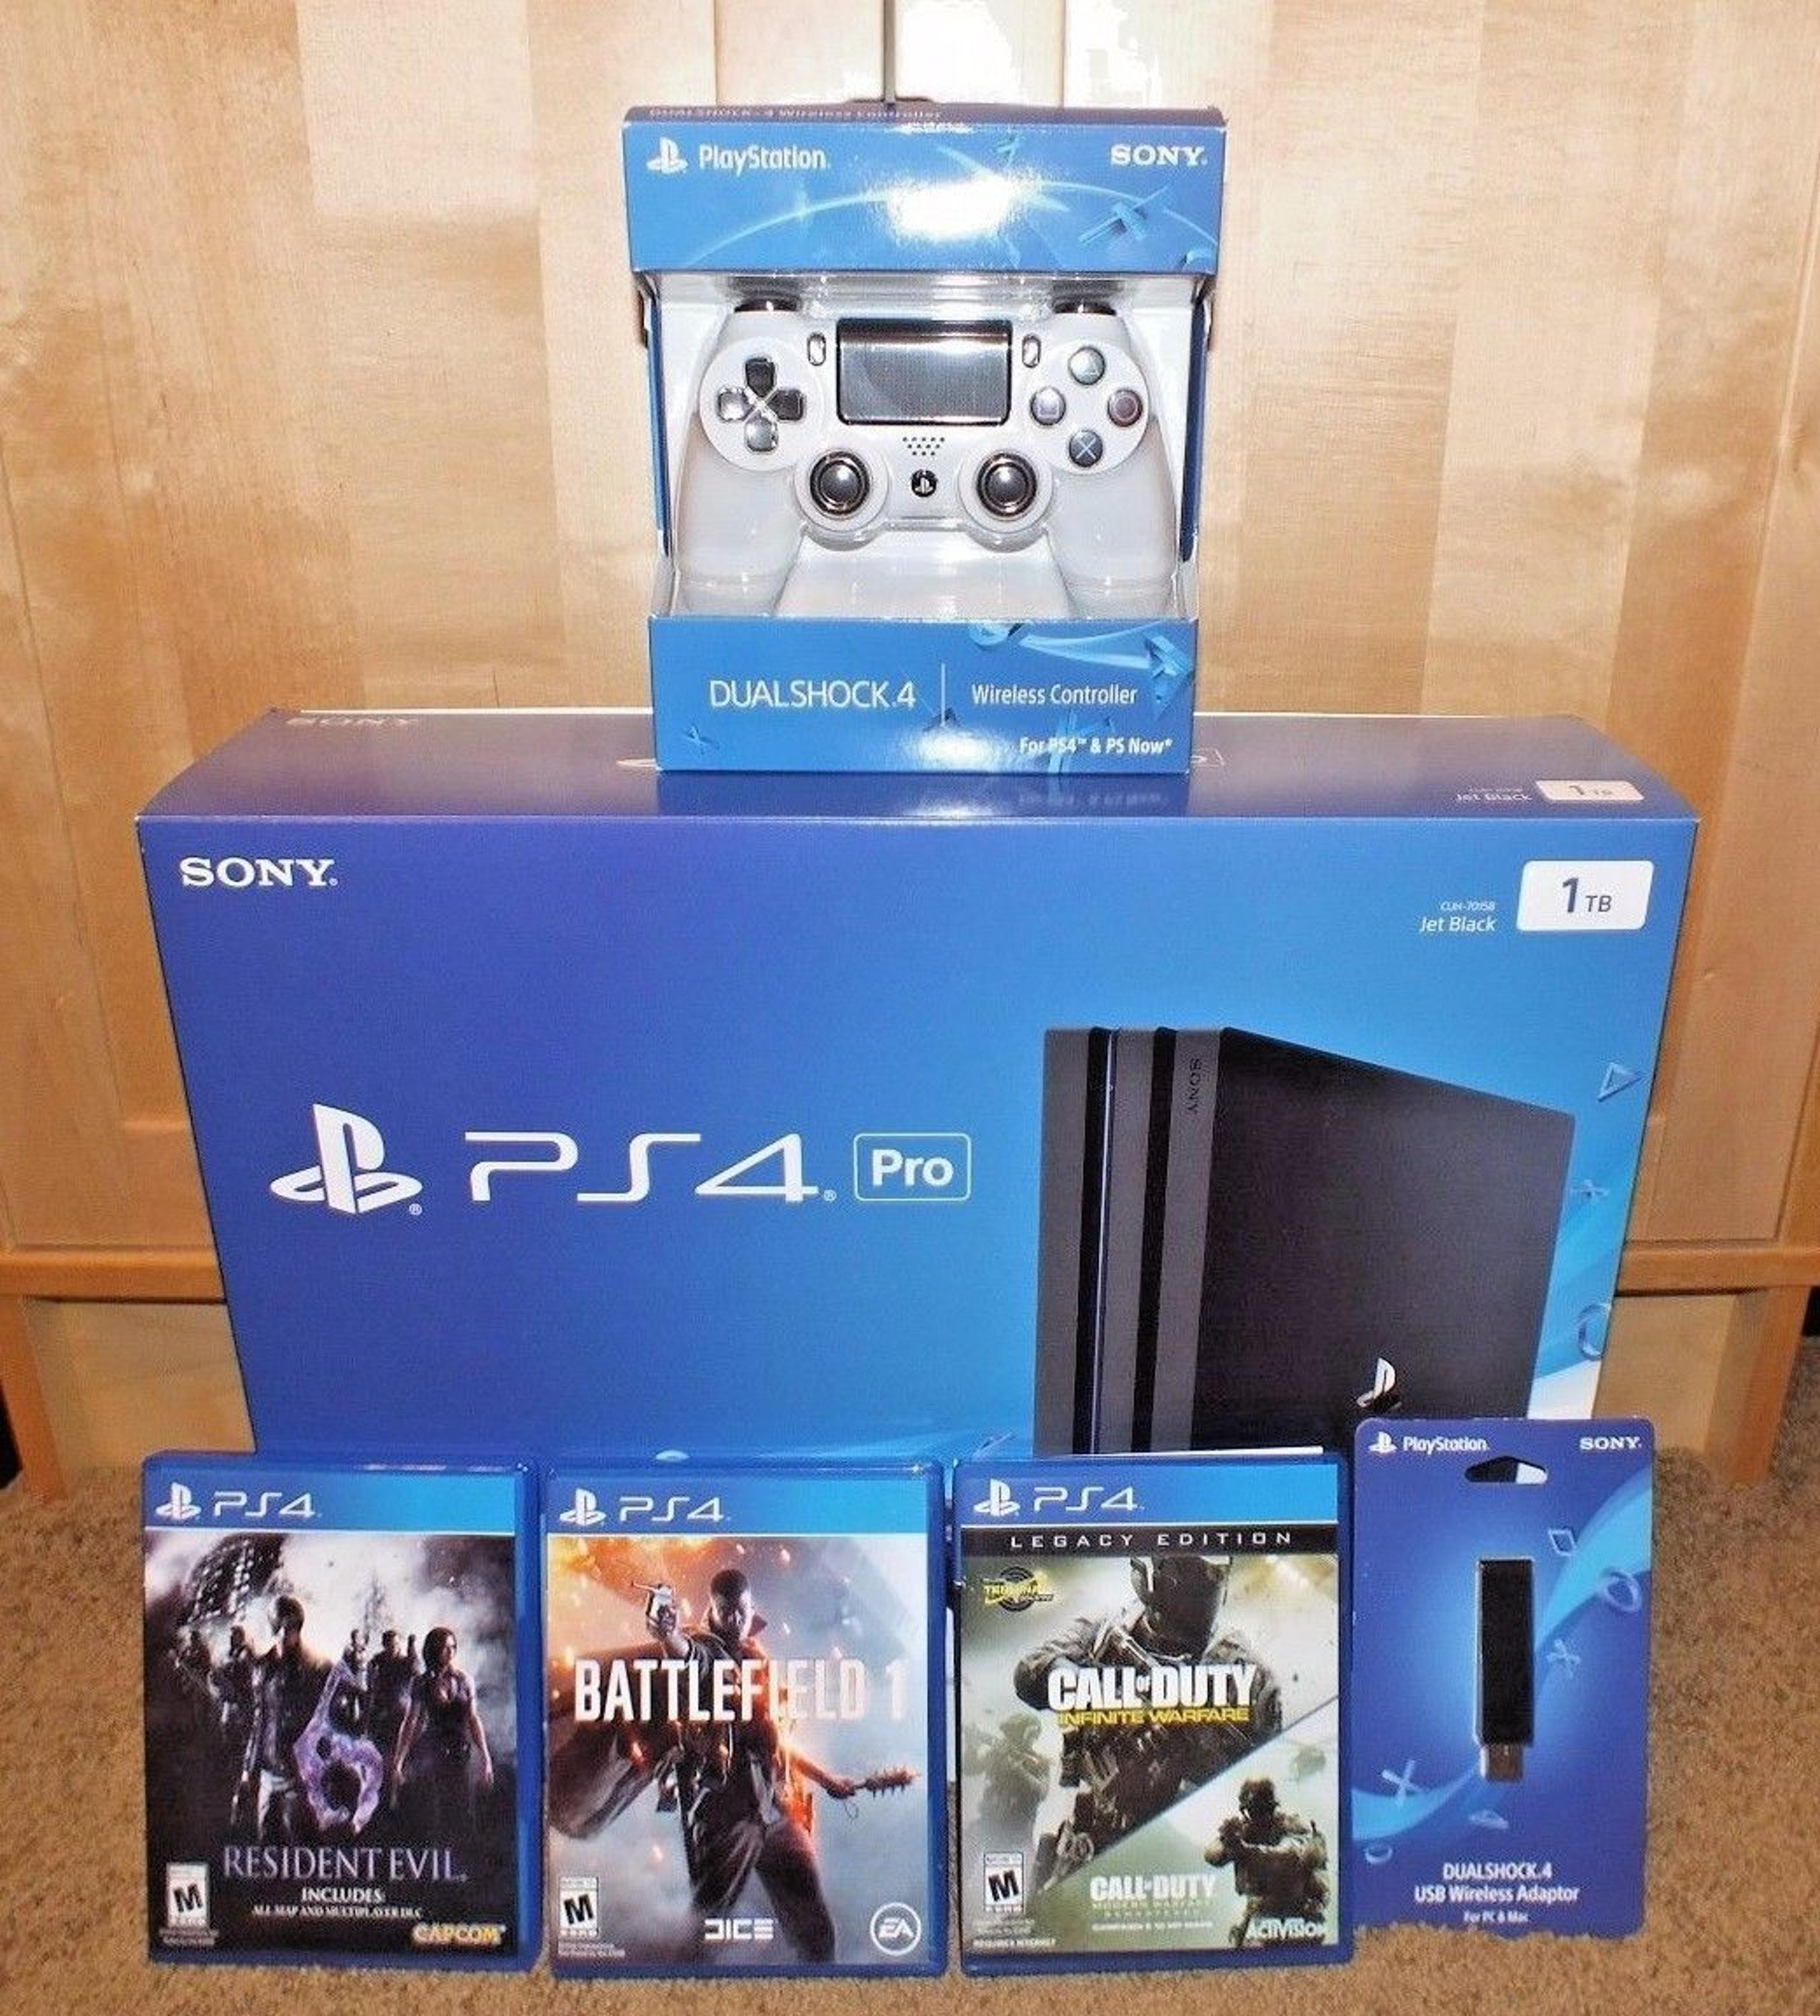 PROMO OFFER BUY 2 GET 1 FREE SONY PLAYSTATION 4 PRO CONSOLE 1TB PS4 CONSOLE 30 Games 4 Controllers Wireless Headset